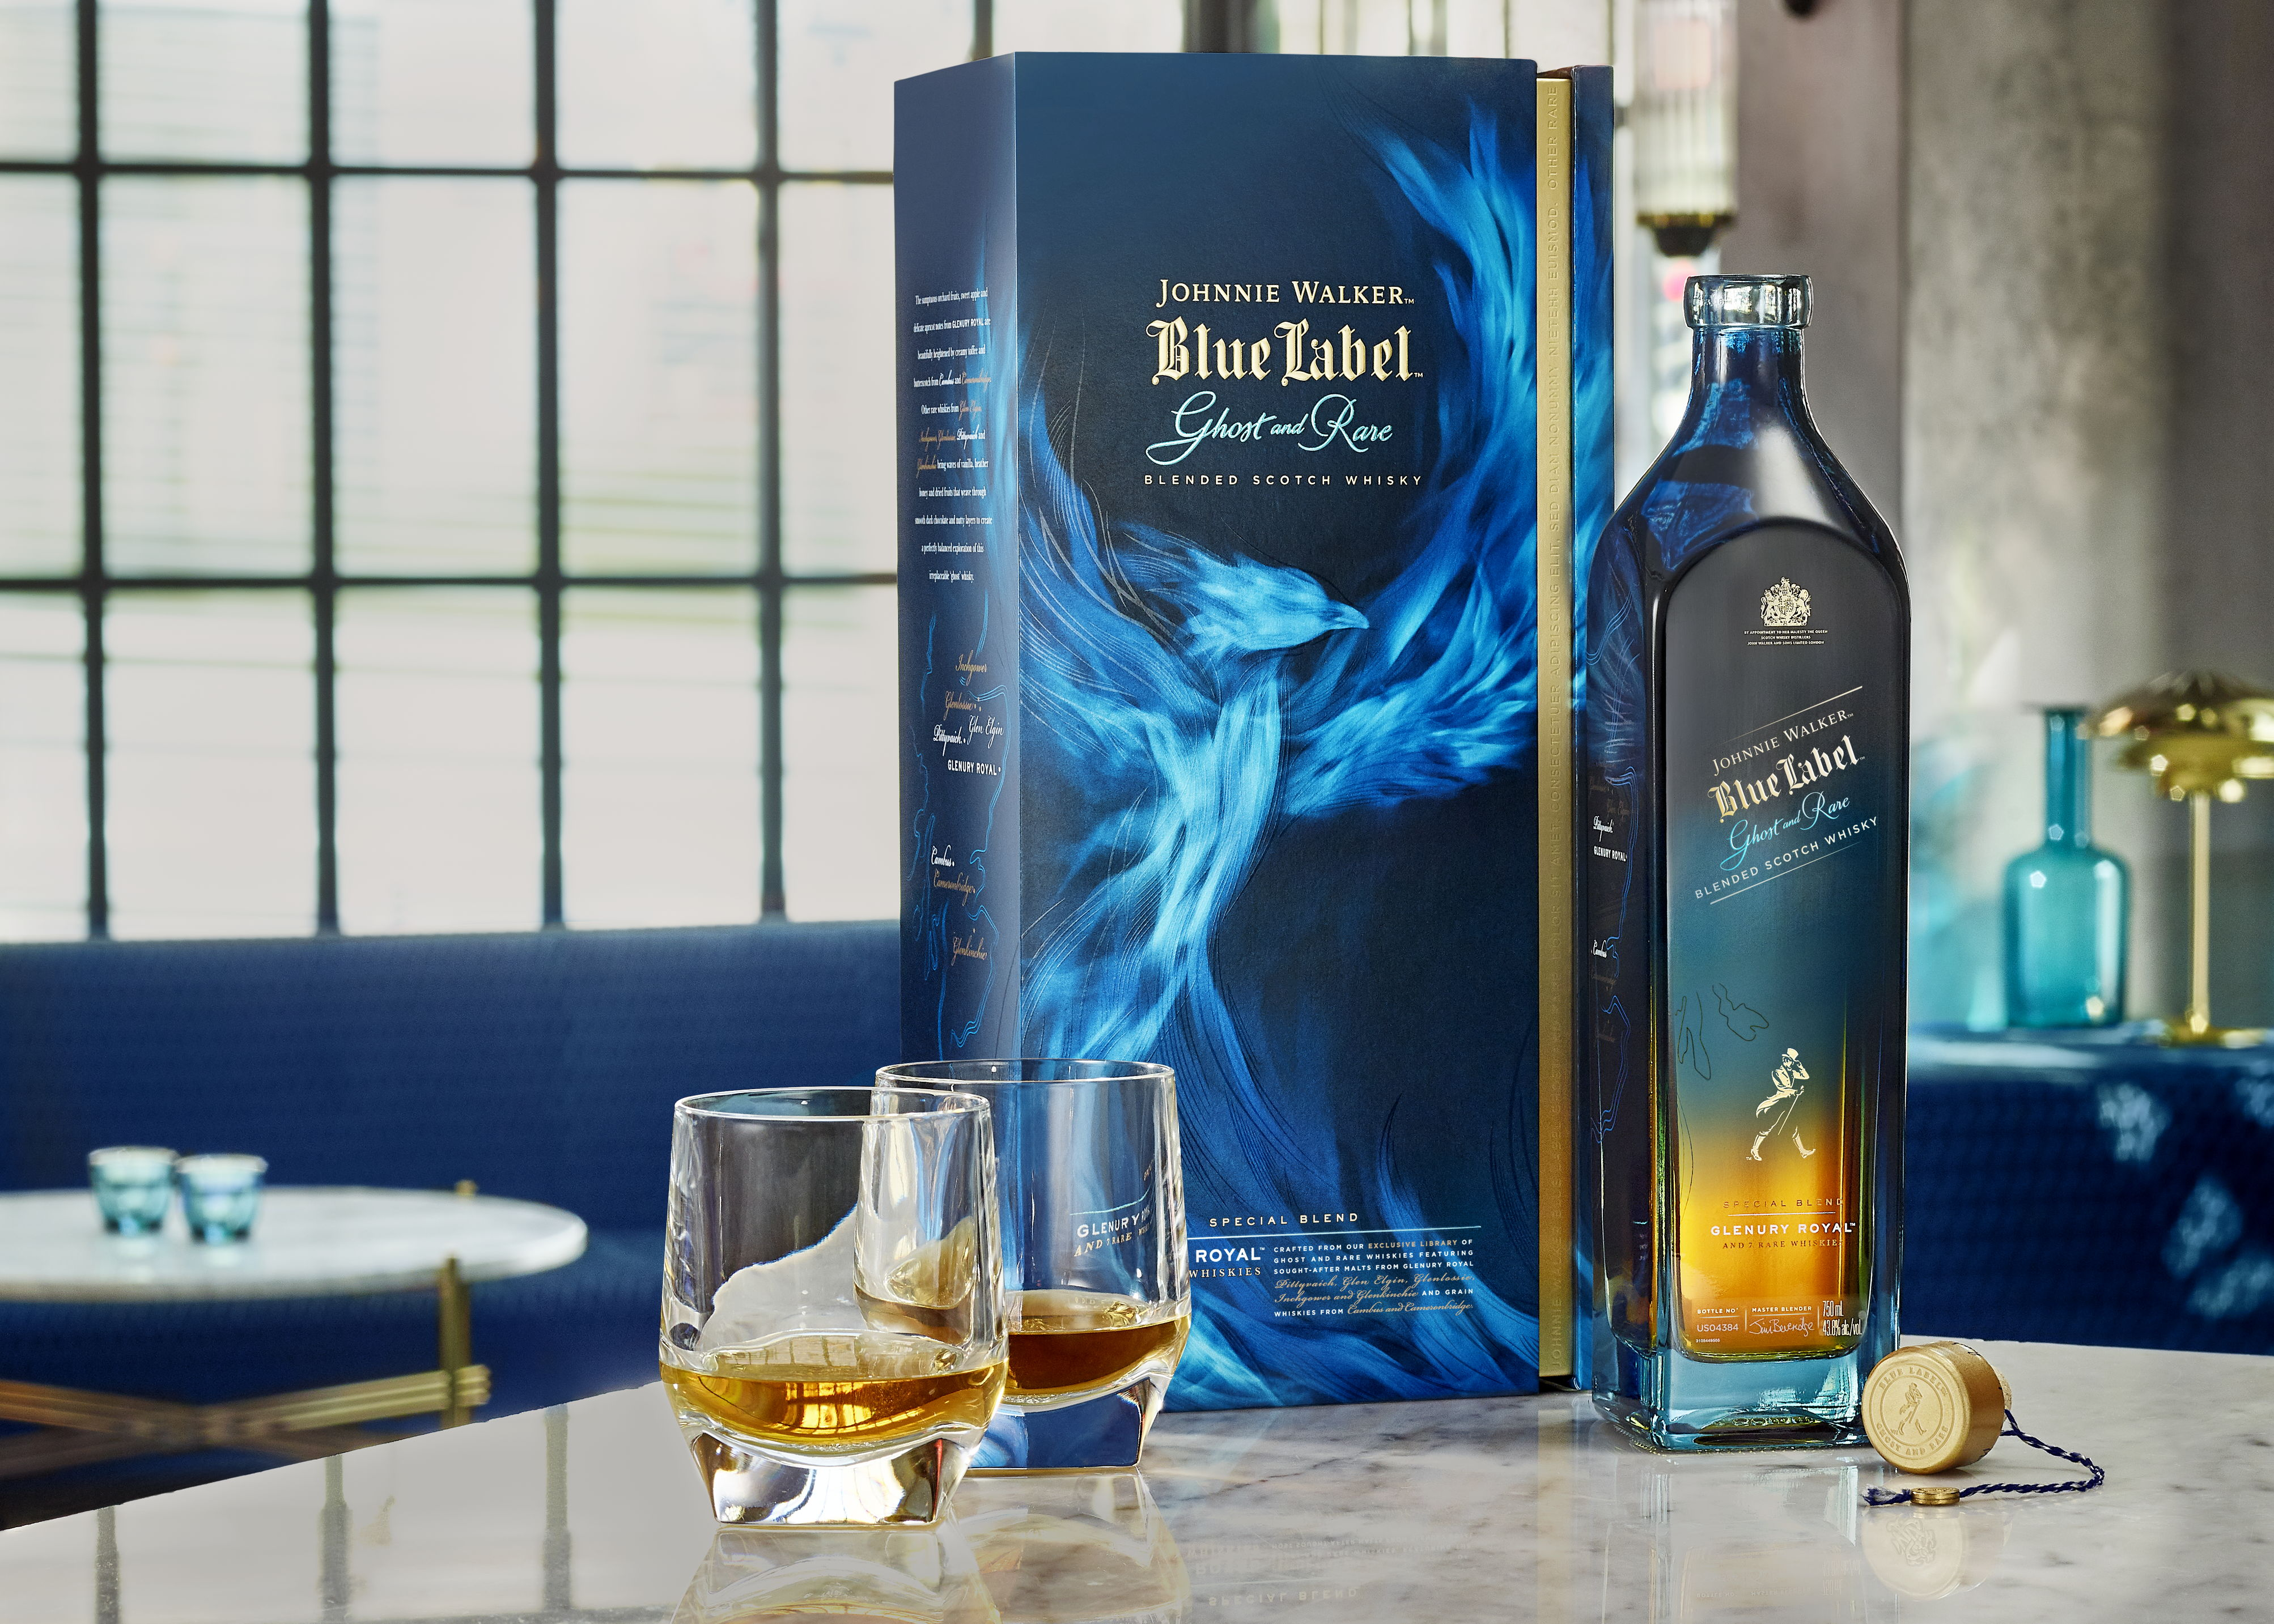 The Royal Highness: Johnnie Walker Blue Label Ghost and Rare Glenury Royal